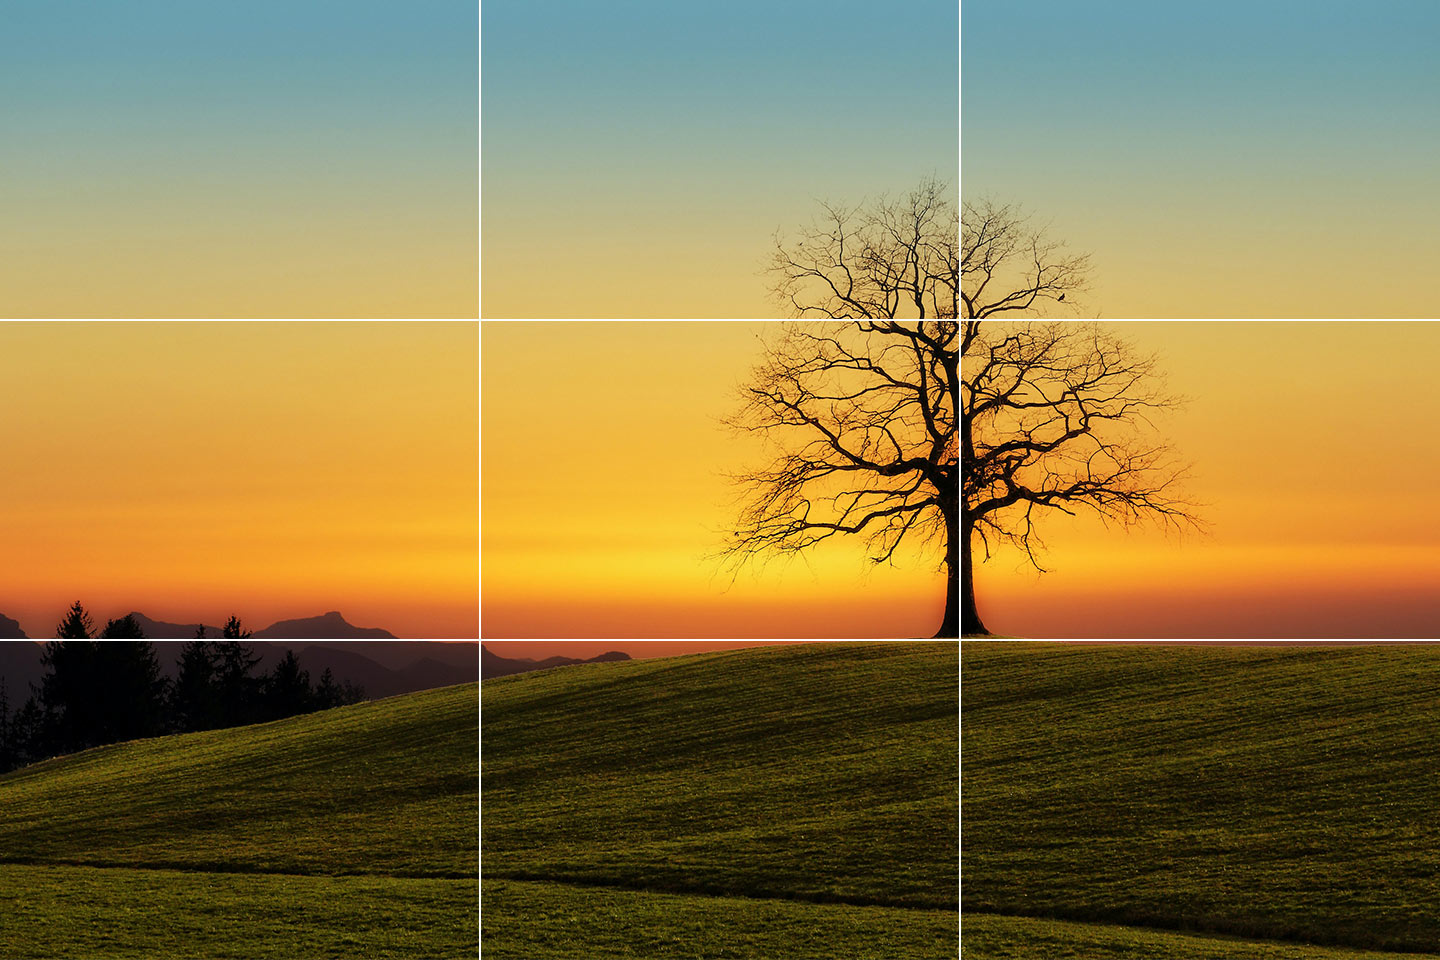 A photo of a tree with a beautiful sunset in the background. A rule of thirds grid is positioned on top of the photo. This demonstrates an important compositional rule for a landscape photographer to understand.